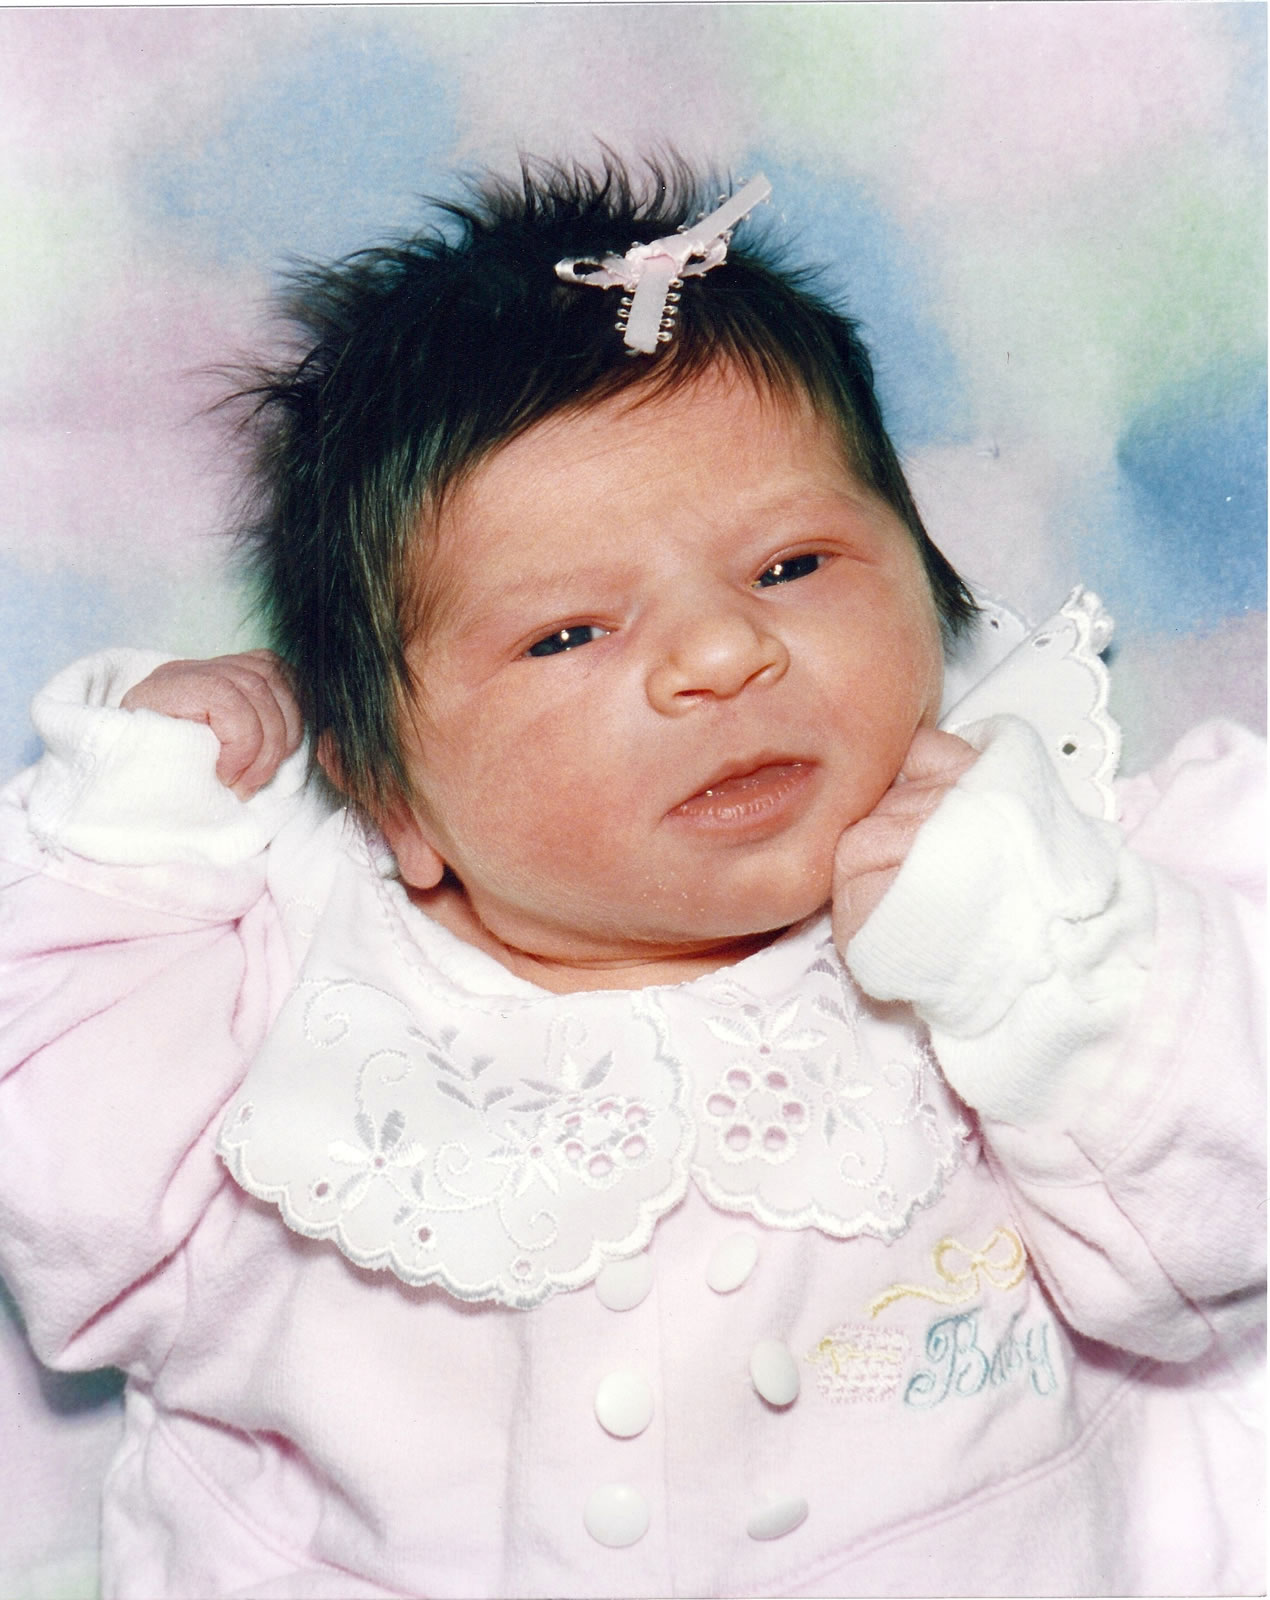 My little angel. March 25, 1996.